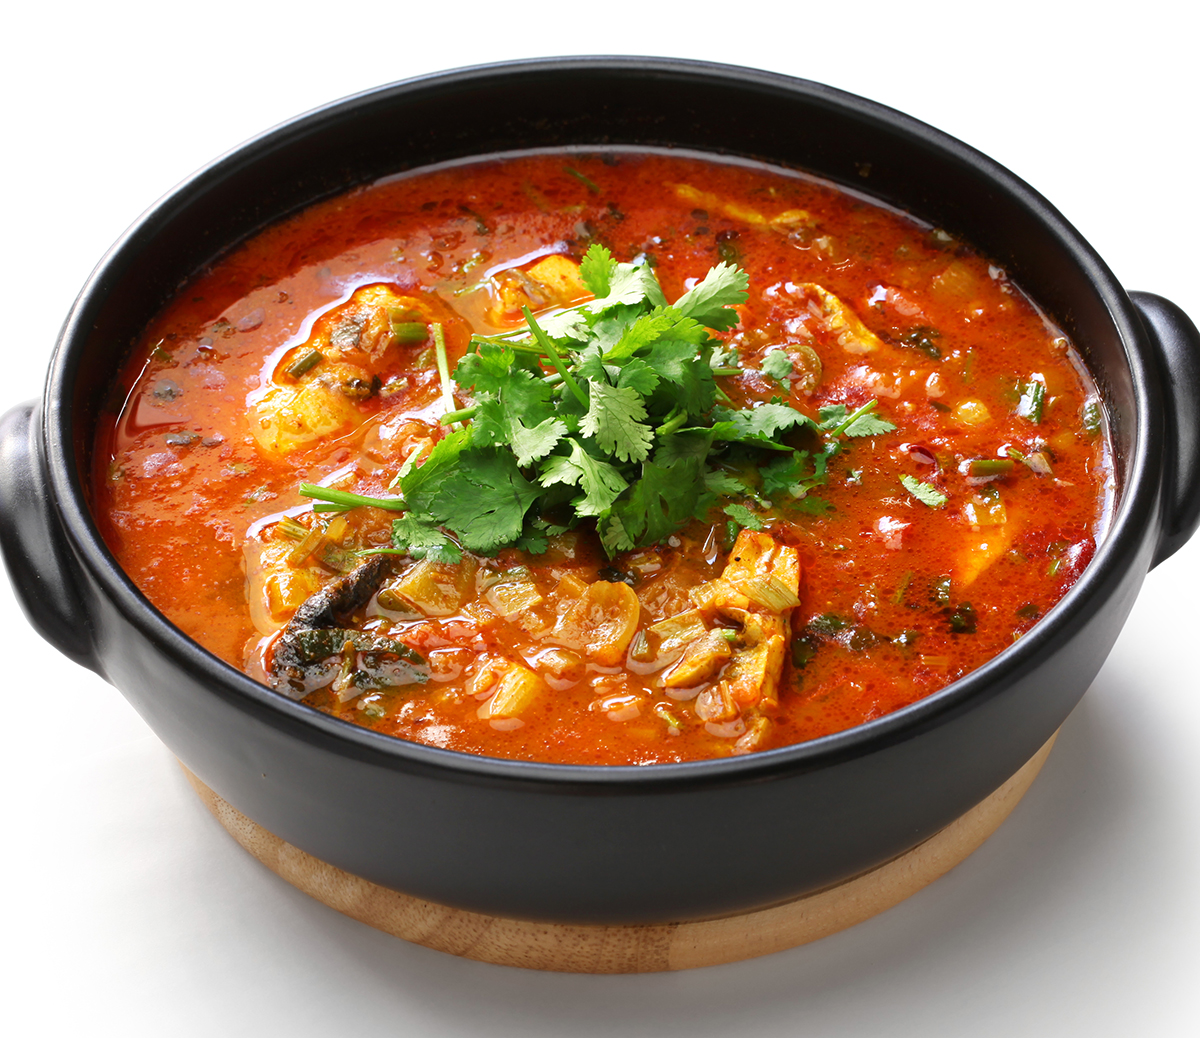 Fish and Kale Soup